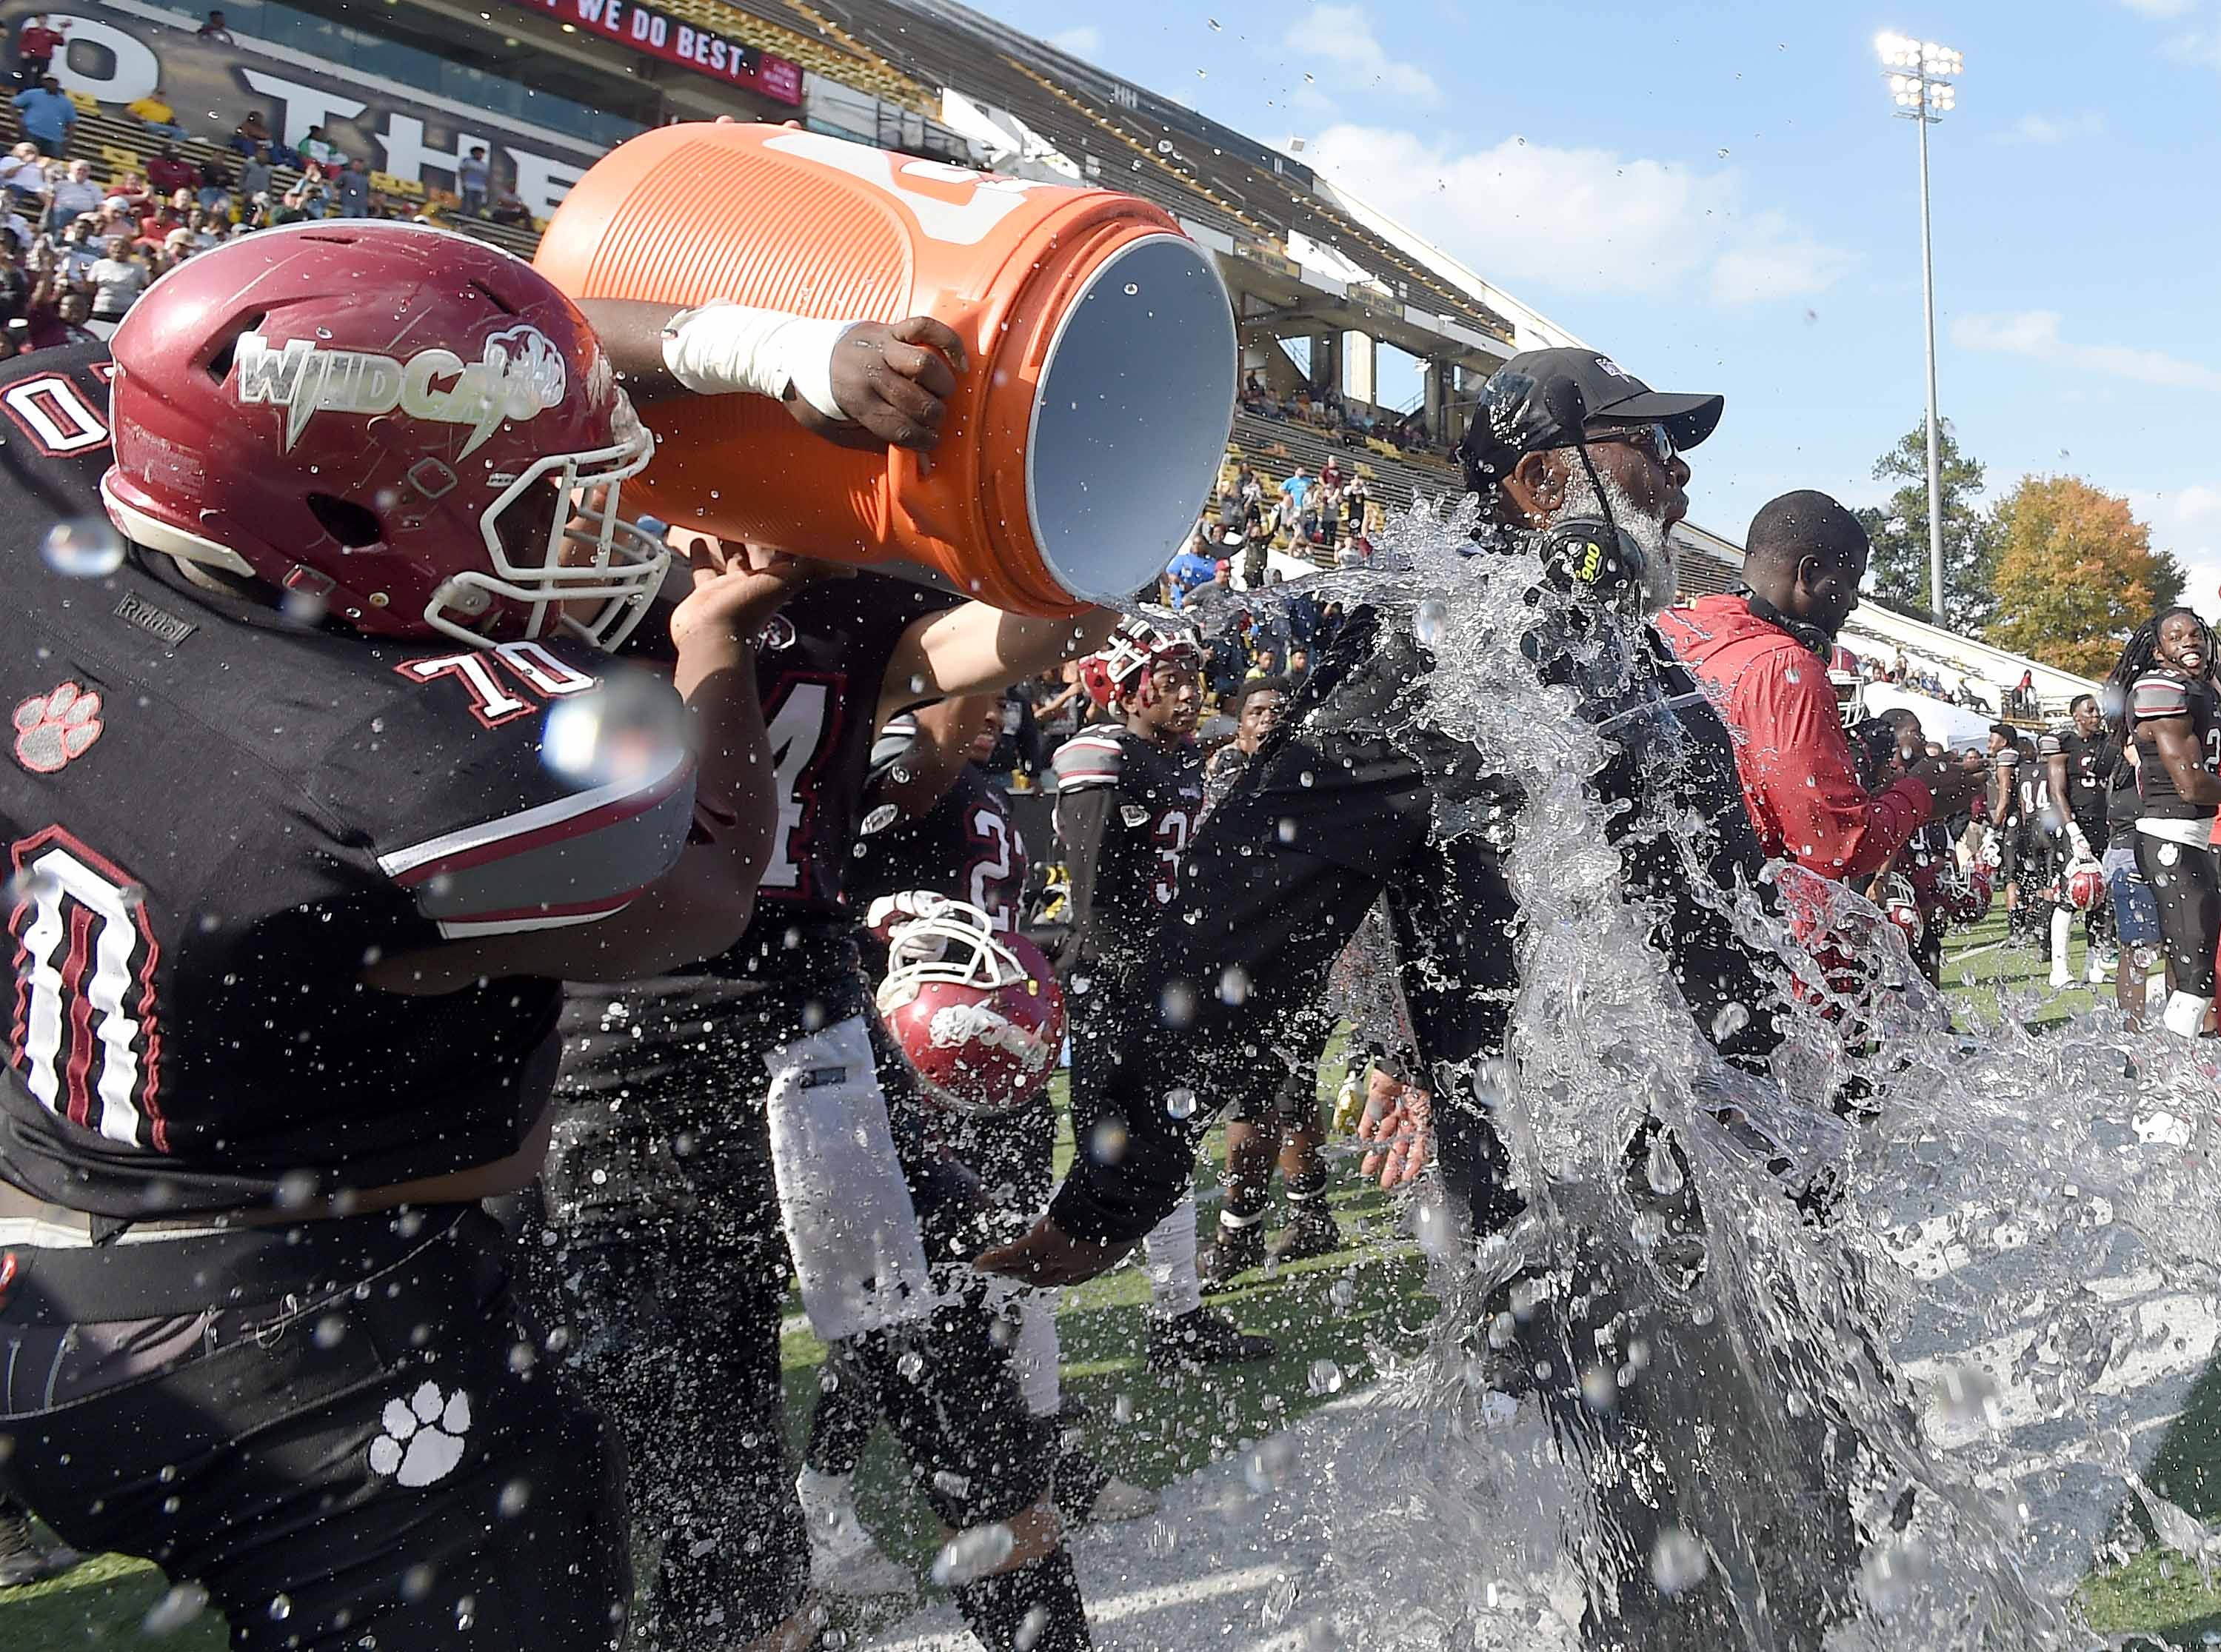 Louisville head coach M.C. Miller gets an ice water bath after the Wildcats beat Poplarville for the Class 4A title on Saturday, December 1, 2018, in the MHSAA BlueCross BlueShield Gridiron Classic High School Football Championships in M.M. Roberts Stadium on the University of Southern Mississippi campus in Hattiesburg, Miss.